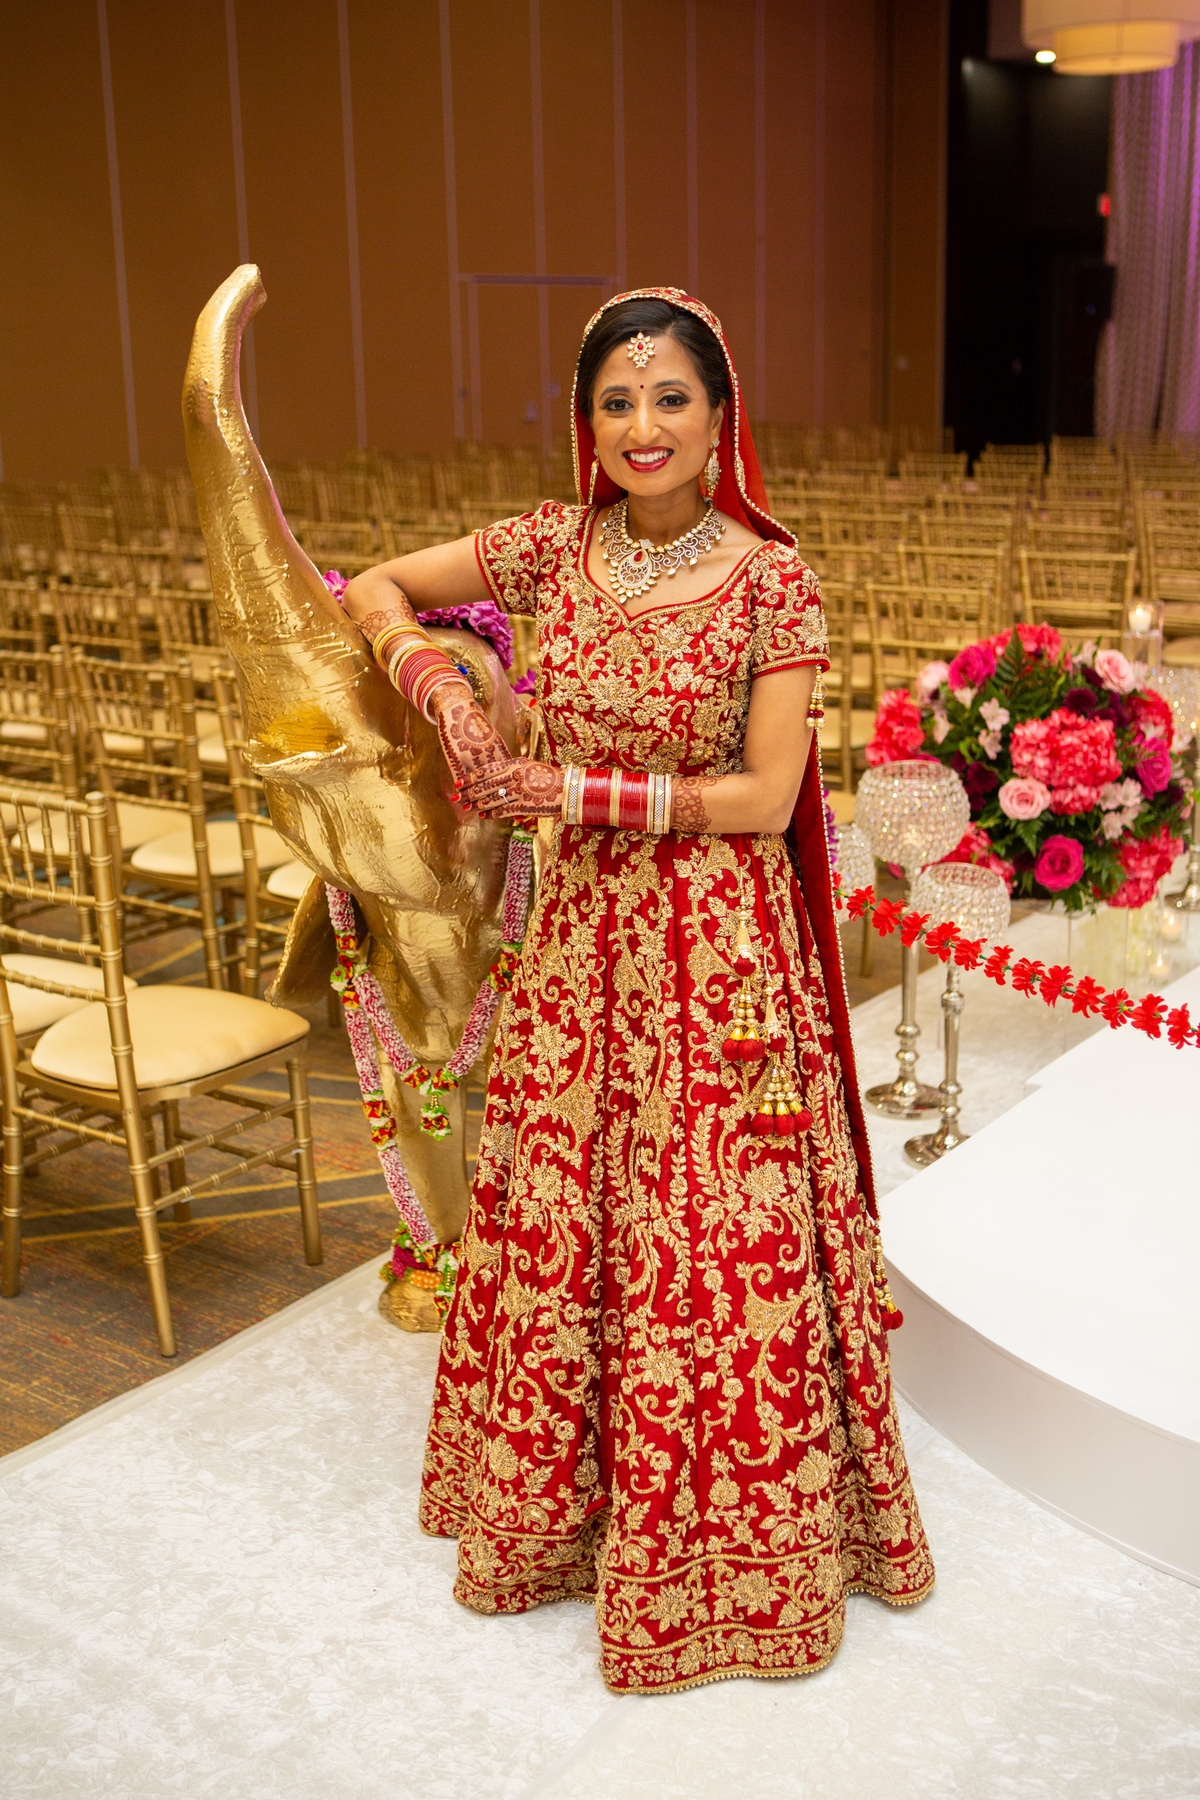 Le Cape Weddings - South Asian Wedding - Chicago Wedding Photographer P&V-47.jpg